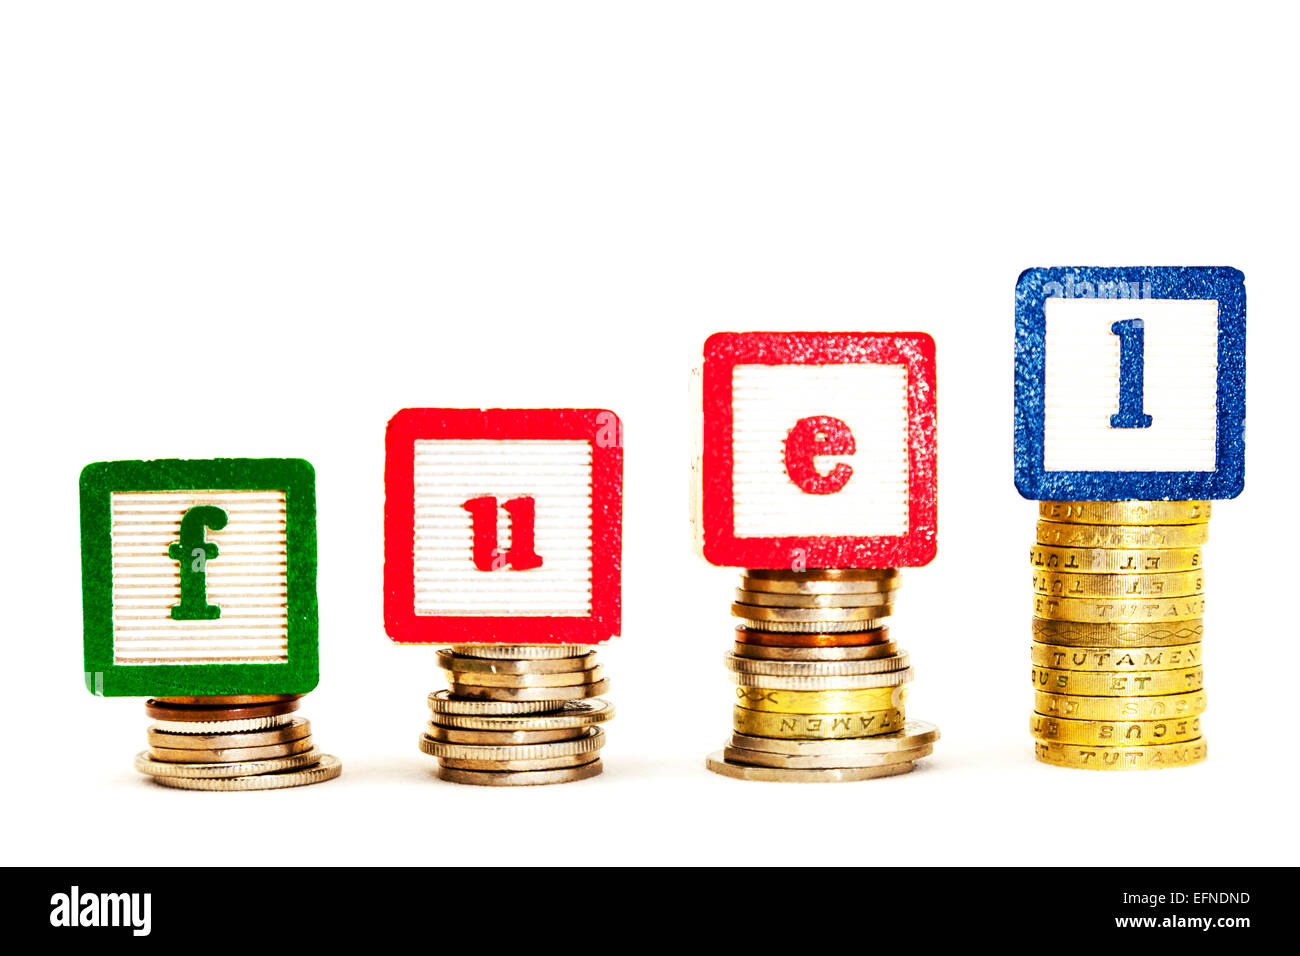 fuel prices rising rise costing more rise raise budget price cash less spend Copy space cut out white background - Stock Image